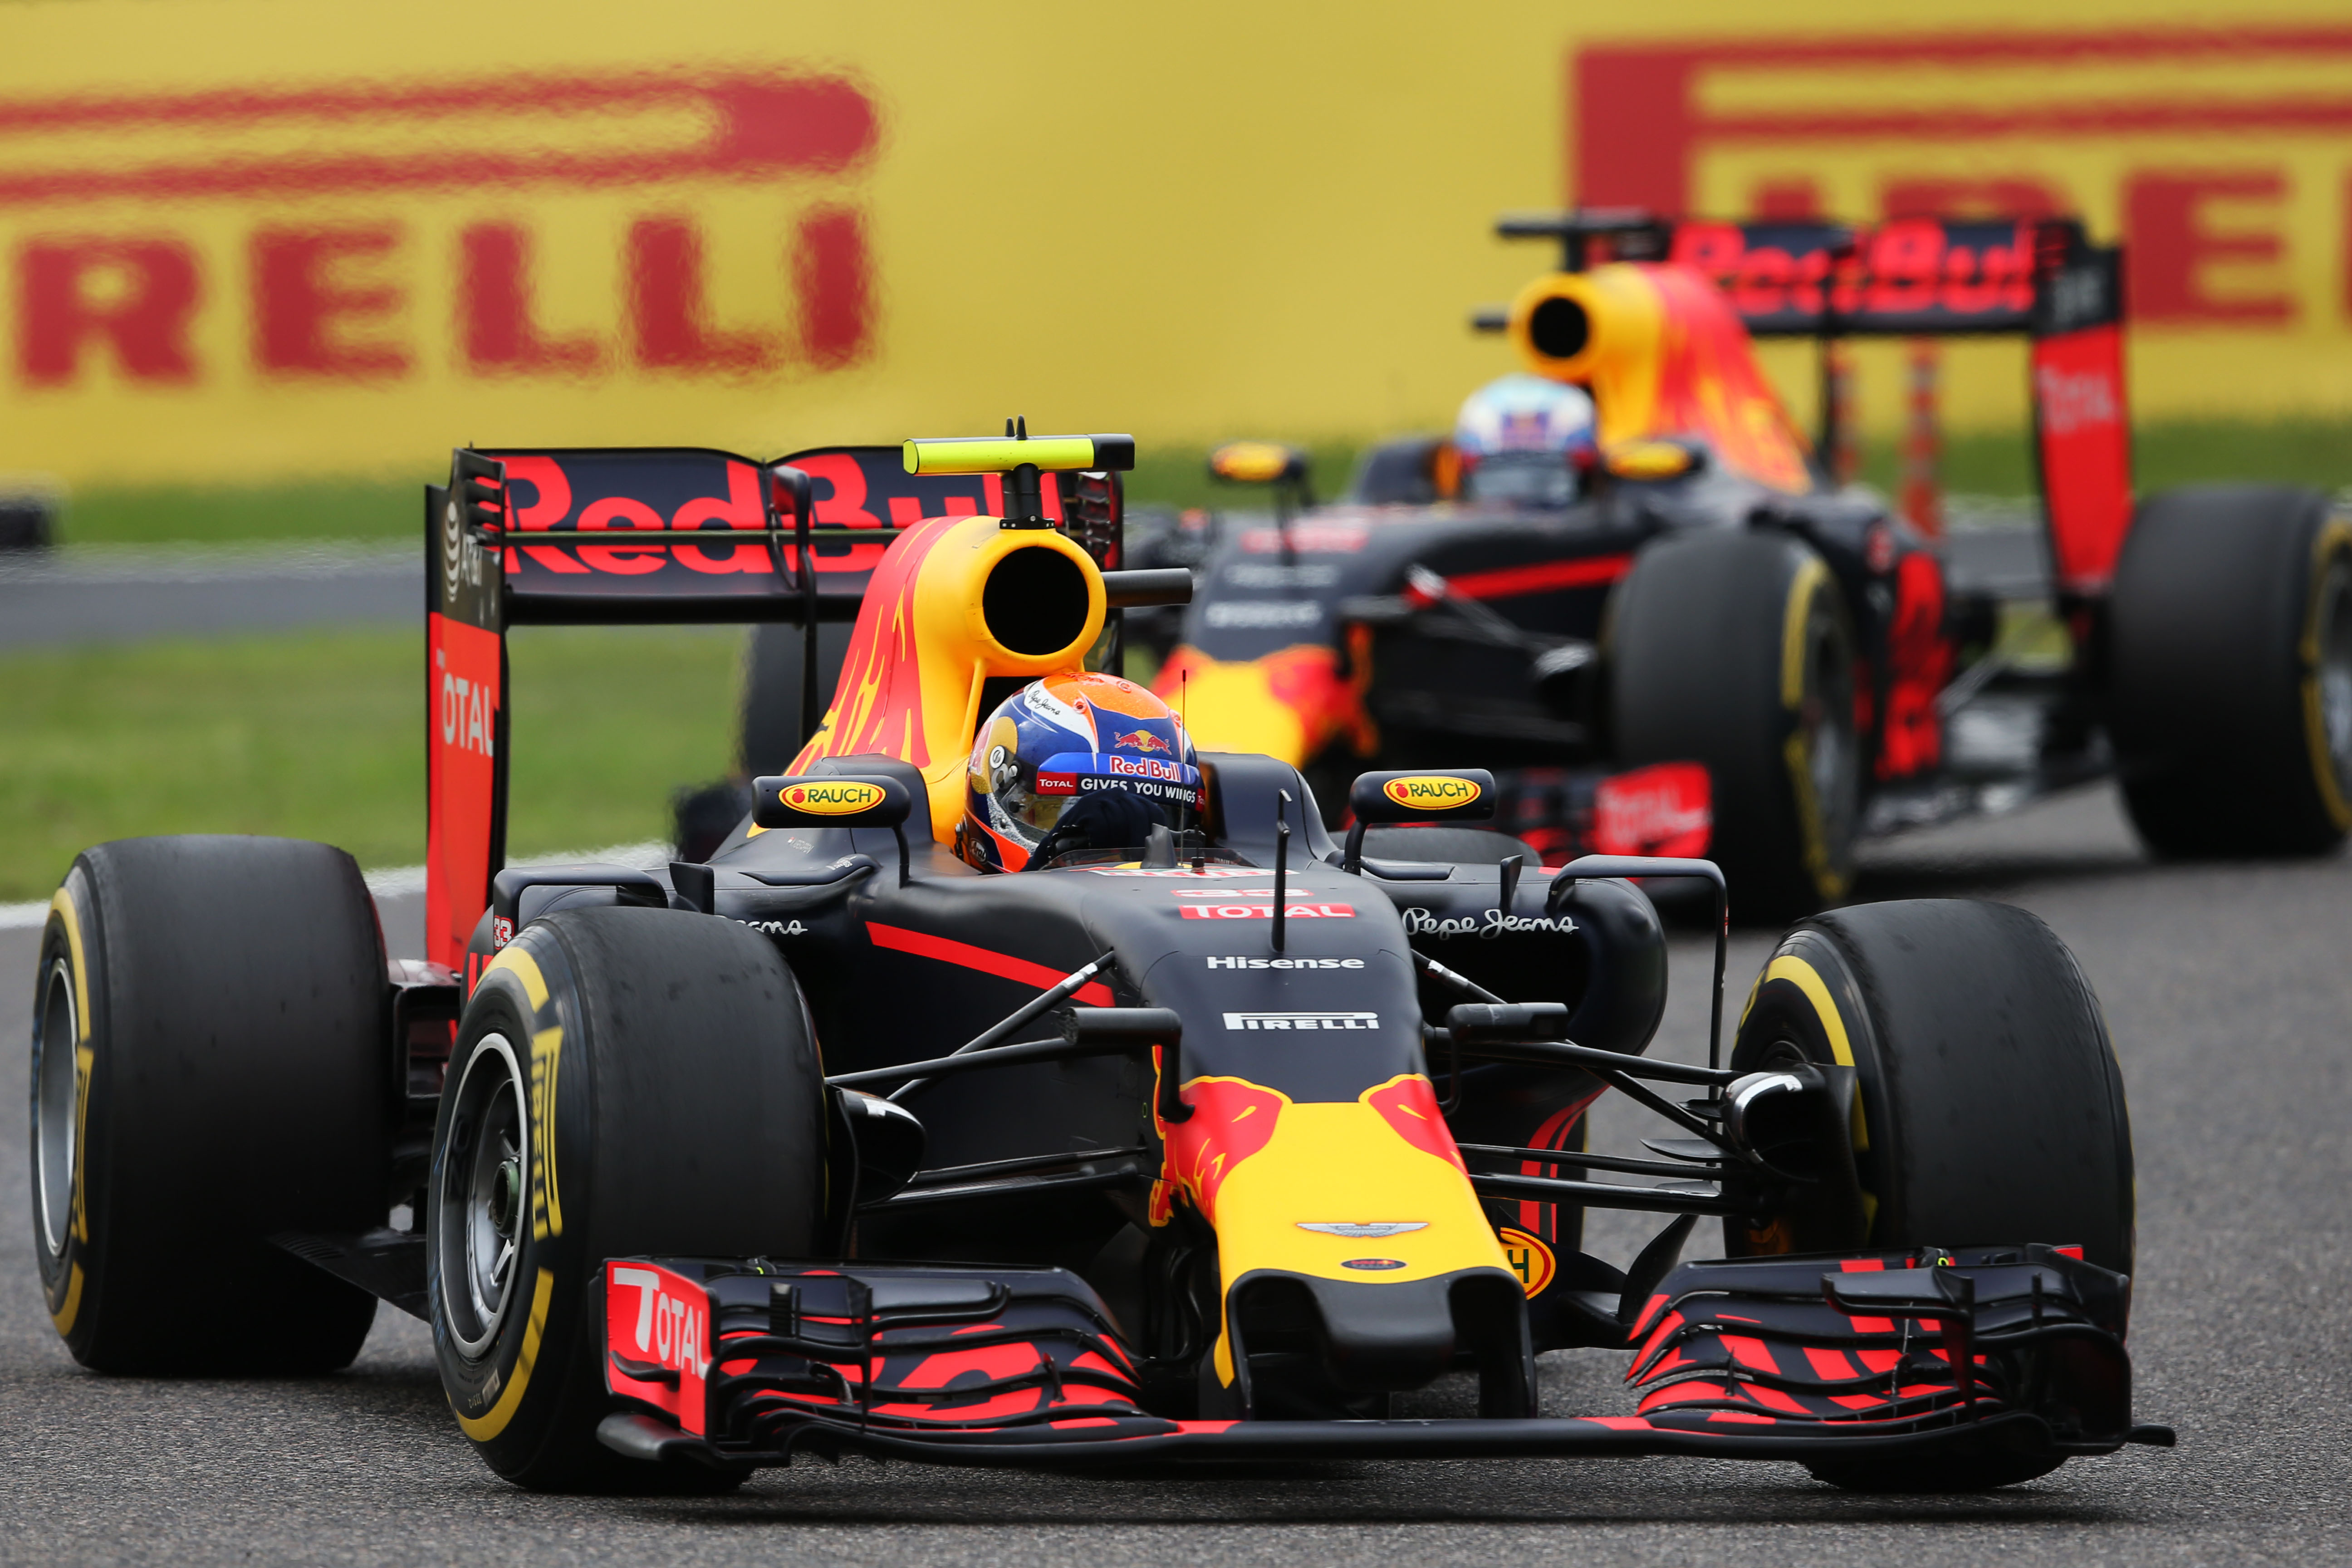 Wallpapers Japanese Grand Prix of 2016 | Marco's Formula 1 ...